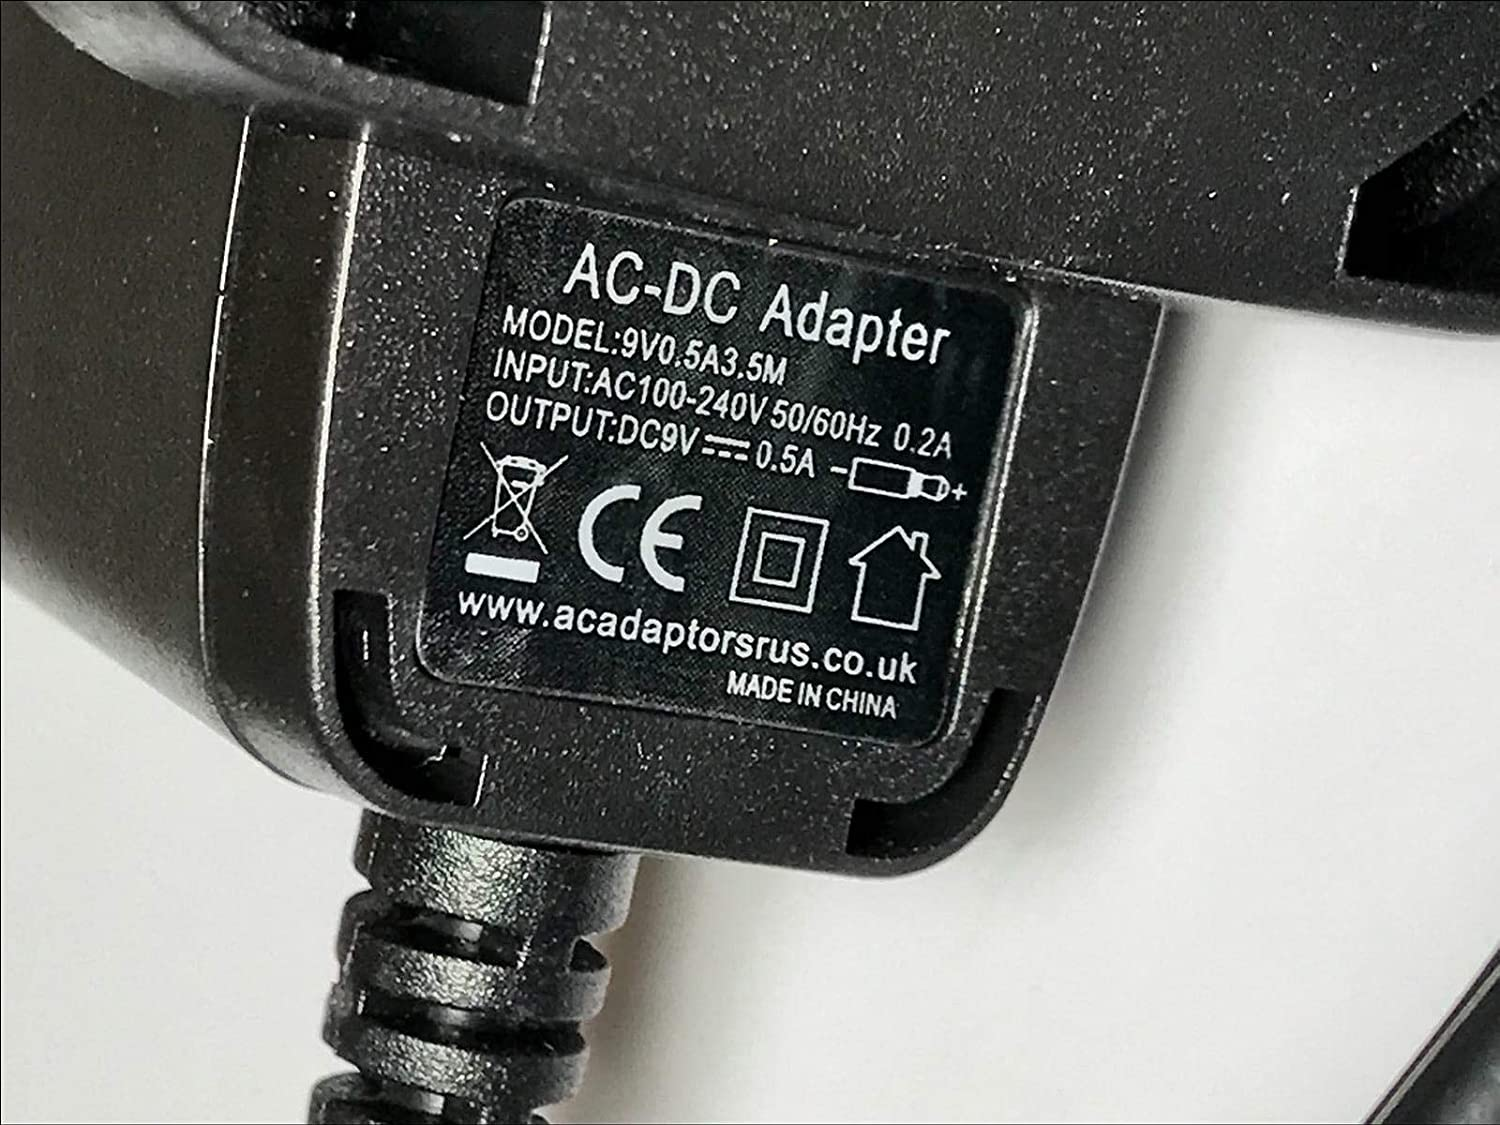 Replacement for 9V 250mA 2.25VA AC//DC Adaptor model R-K090250DT Power Supply UK